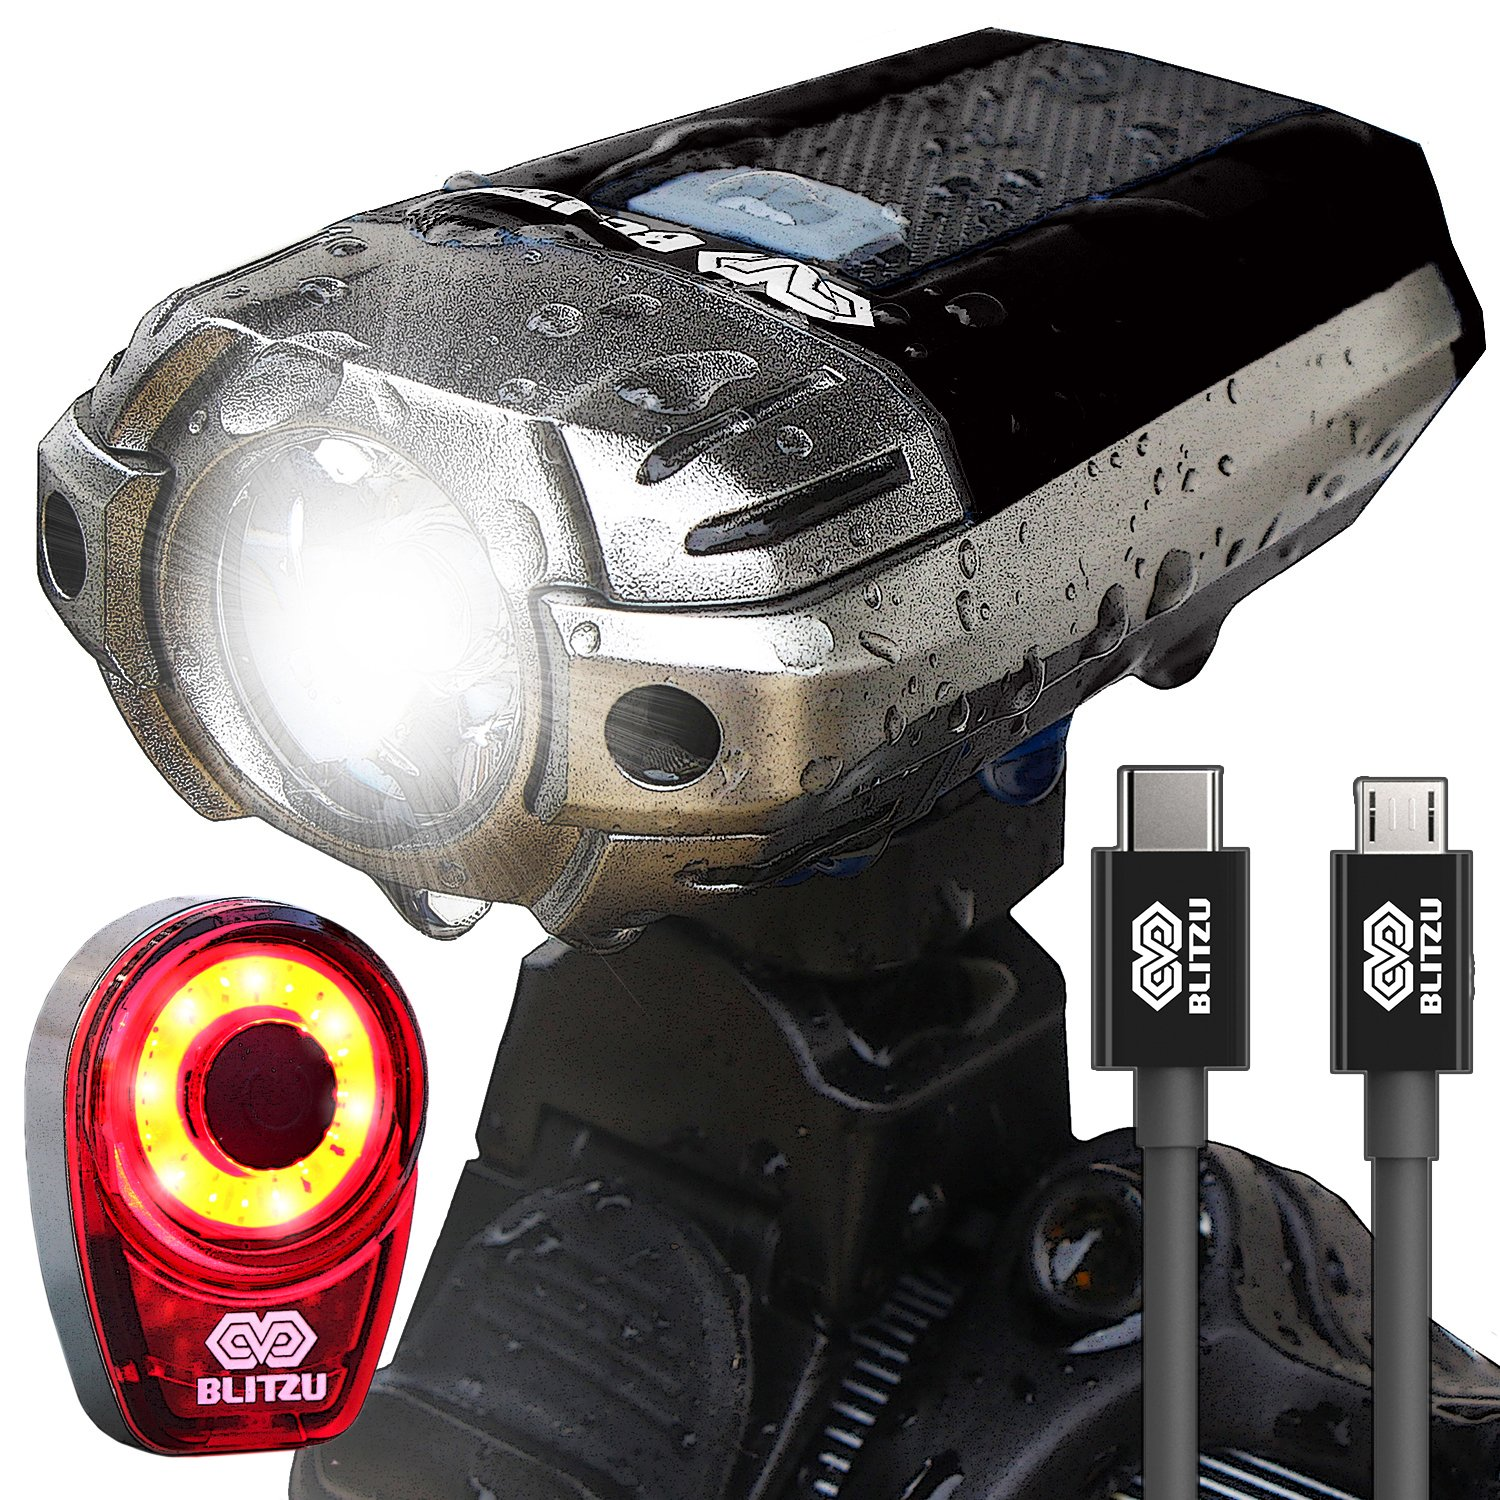 BLITZU Gator 390 USB Rechargeable LED Bike Light Set Bicycle Headlight Front u0026 FREE Rear Back Tail Light. Waterproof Easy To Install for Kids Men Women ...  sc 1 st  Amazon.com & Best Rated in Bike Lighting Parts u0026 Accessories u0026 Helpful Customer ...